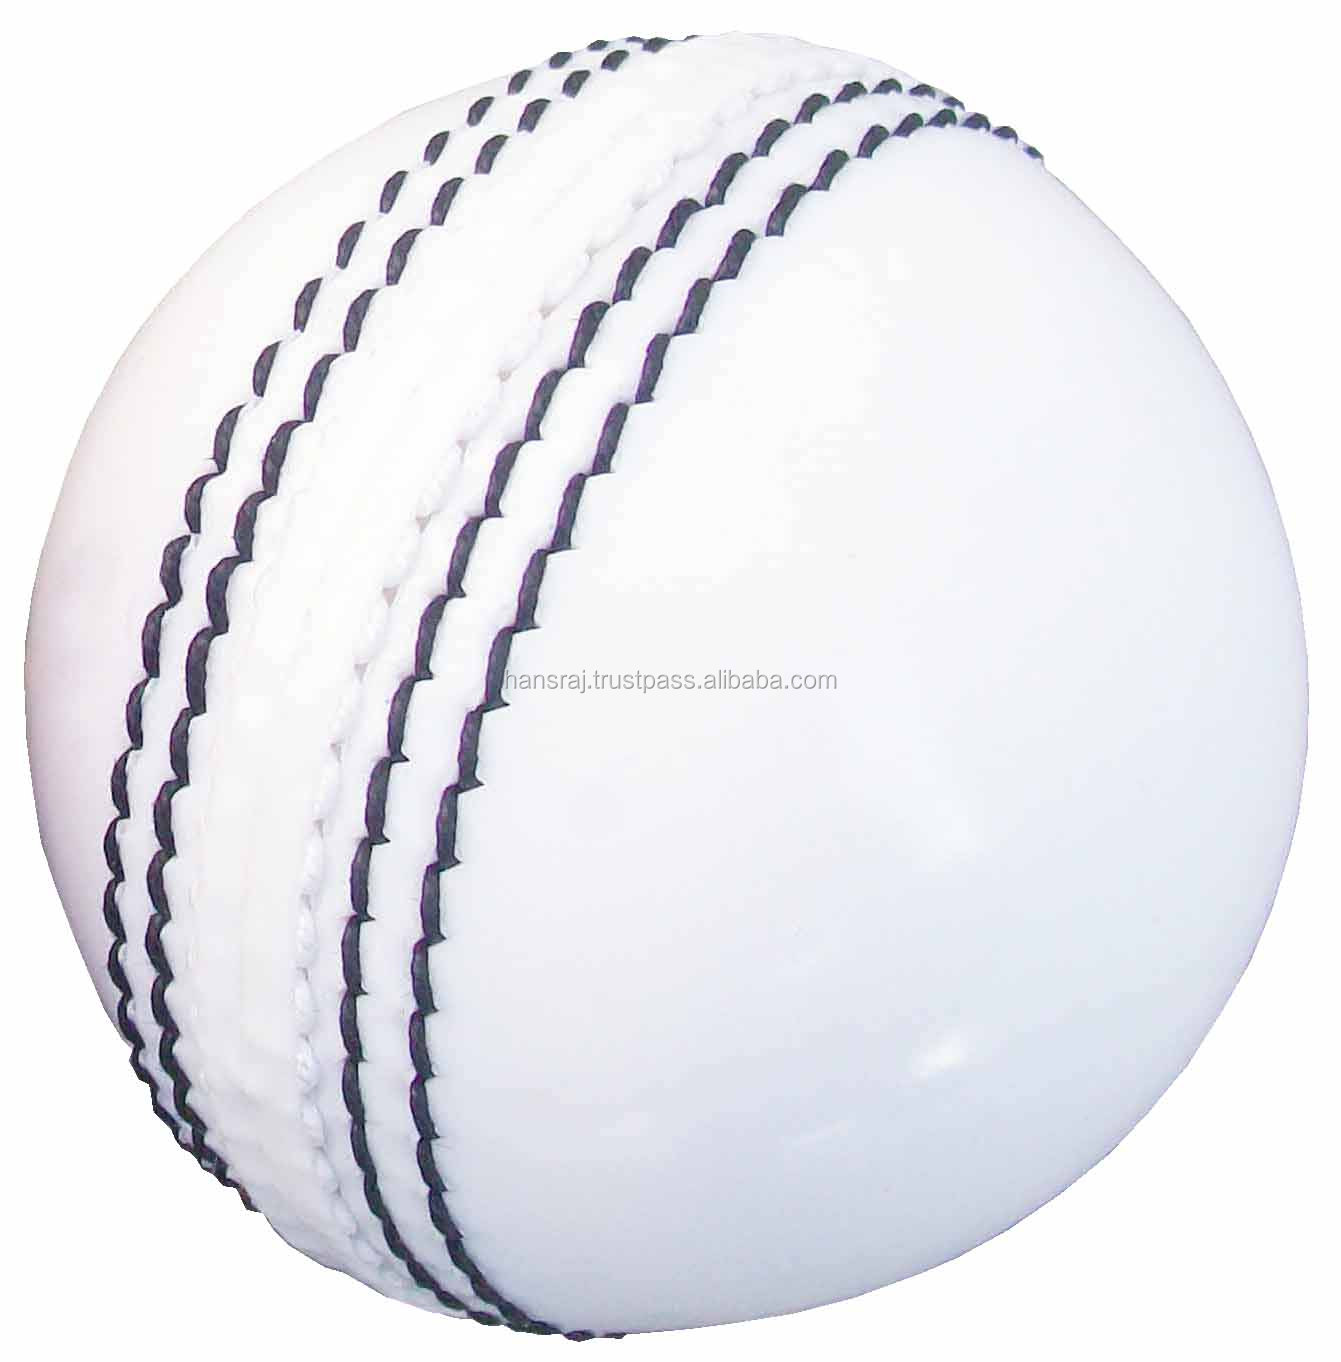 White cricket ball png